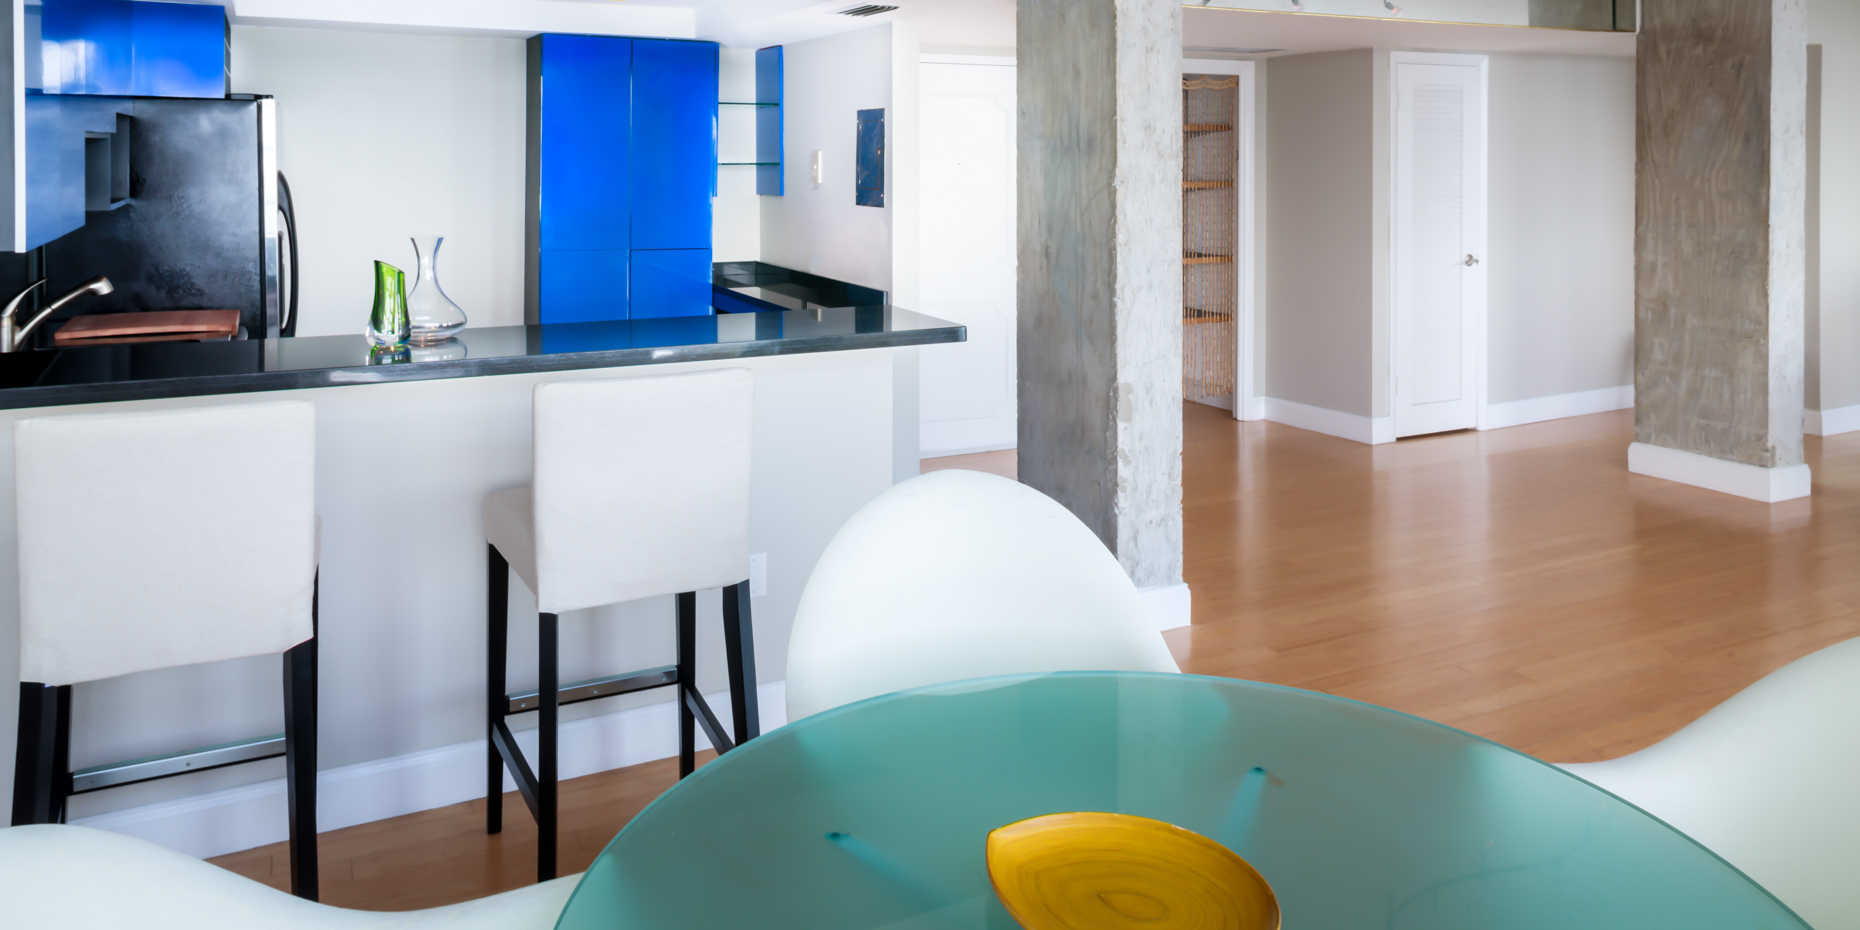 Michael Cushman Photography& Motion Modern_Studio_Dining-Kitchen